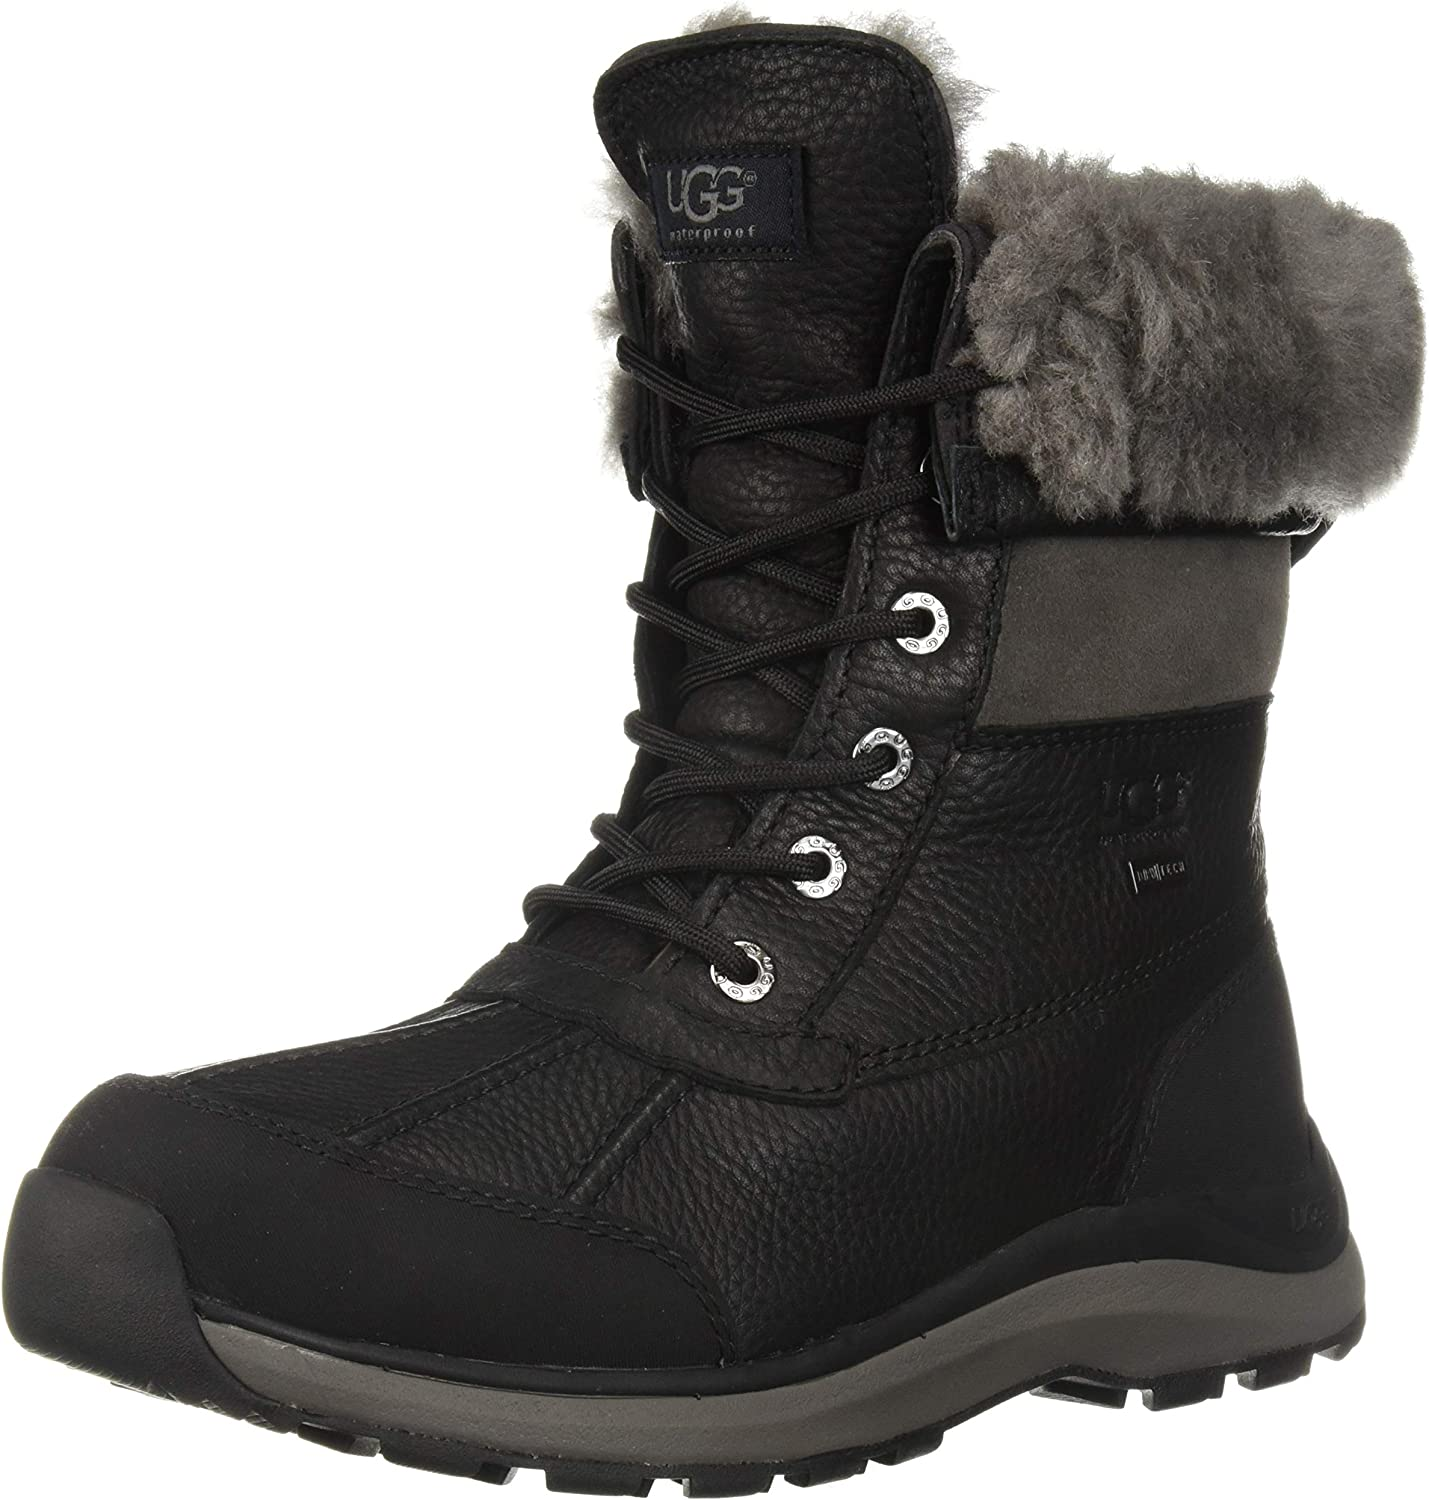 Winter boots for women